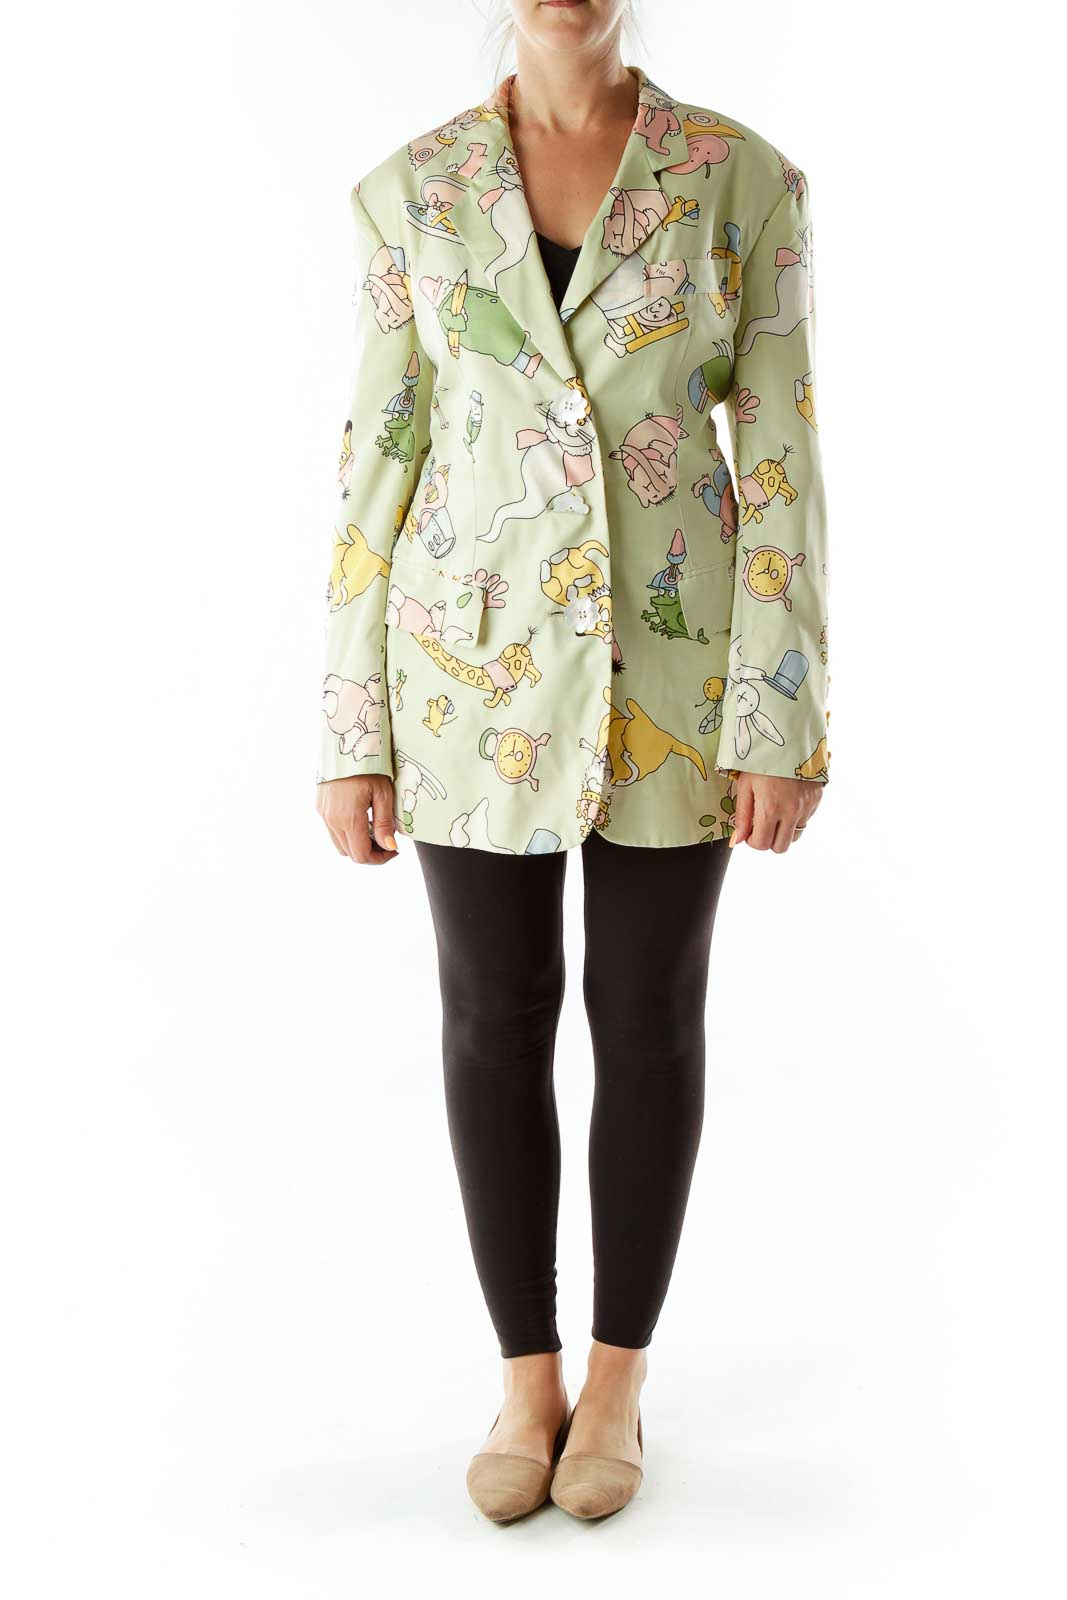 Green Cartoon Flower Buttons Designer Blazer